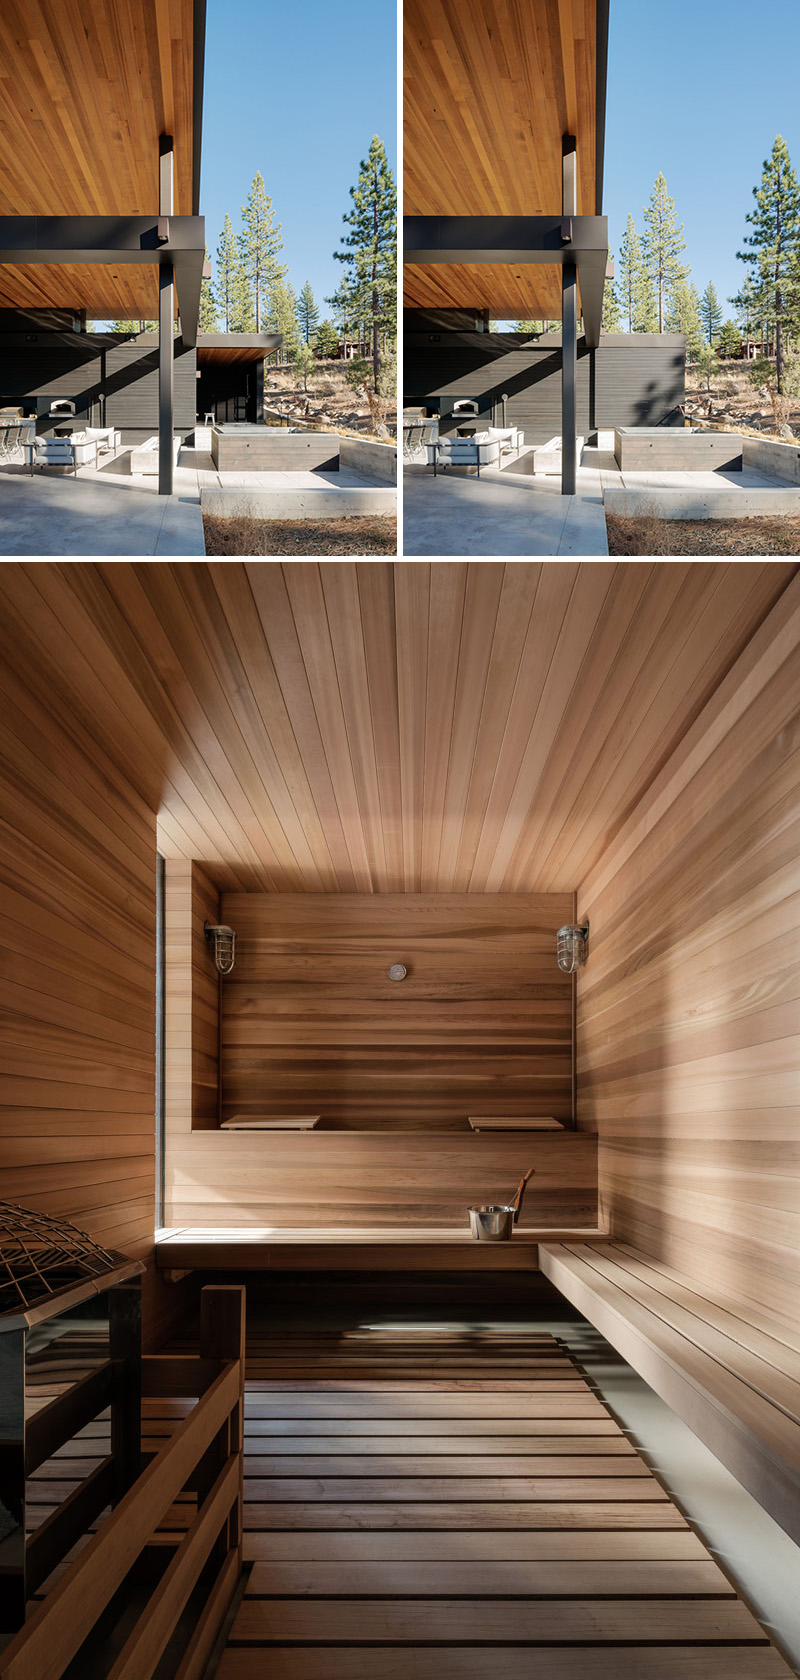 A wood sliding door behind the outdoor soaking tub reveals a bathroom and a sauna. Light wood lines the sauna, which has plenty of space with bench style seating.